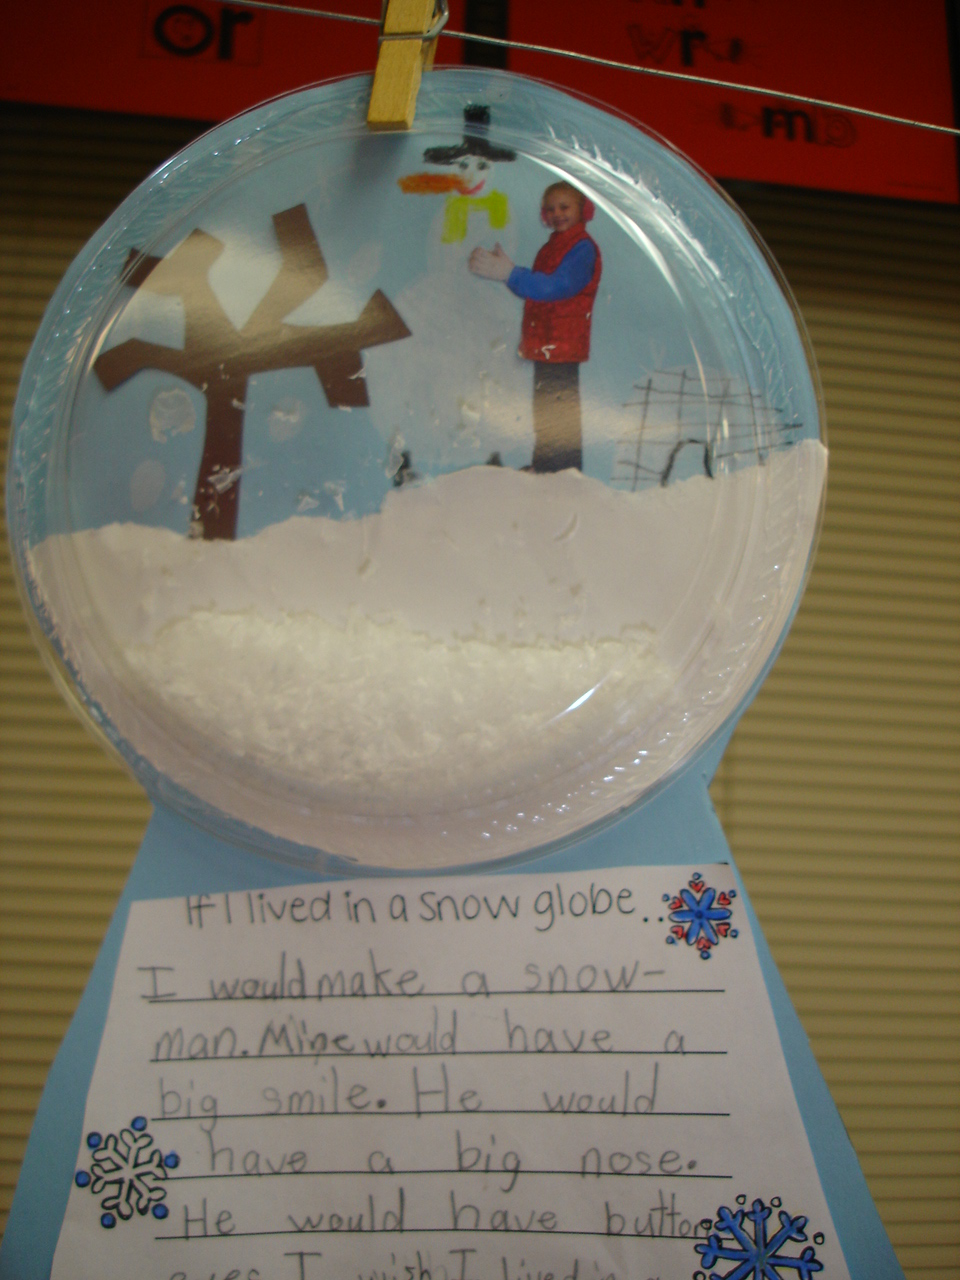 If I were Trapped in a Snowglobe